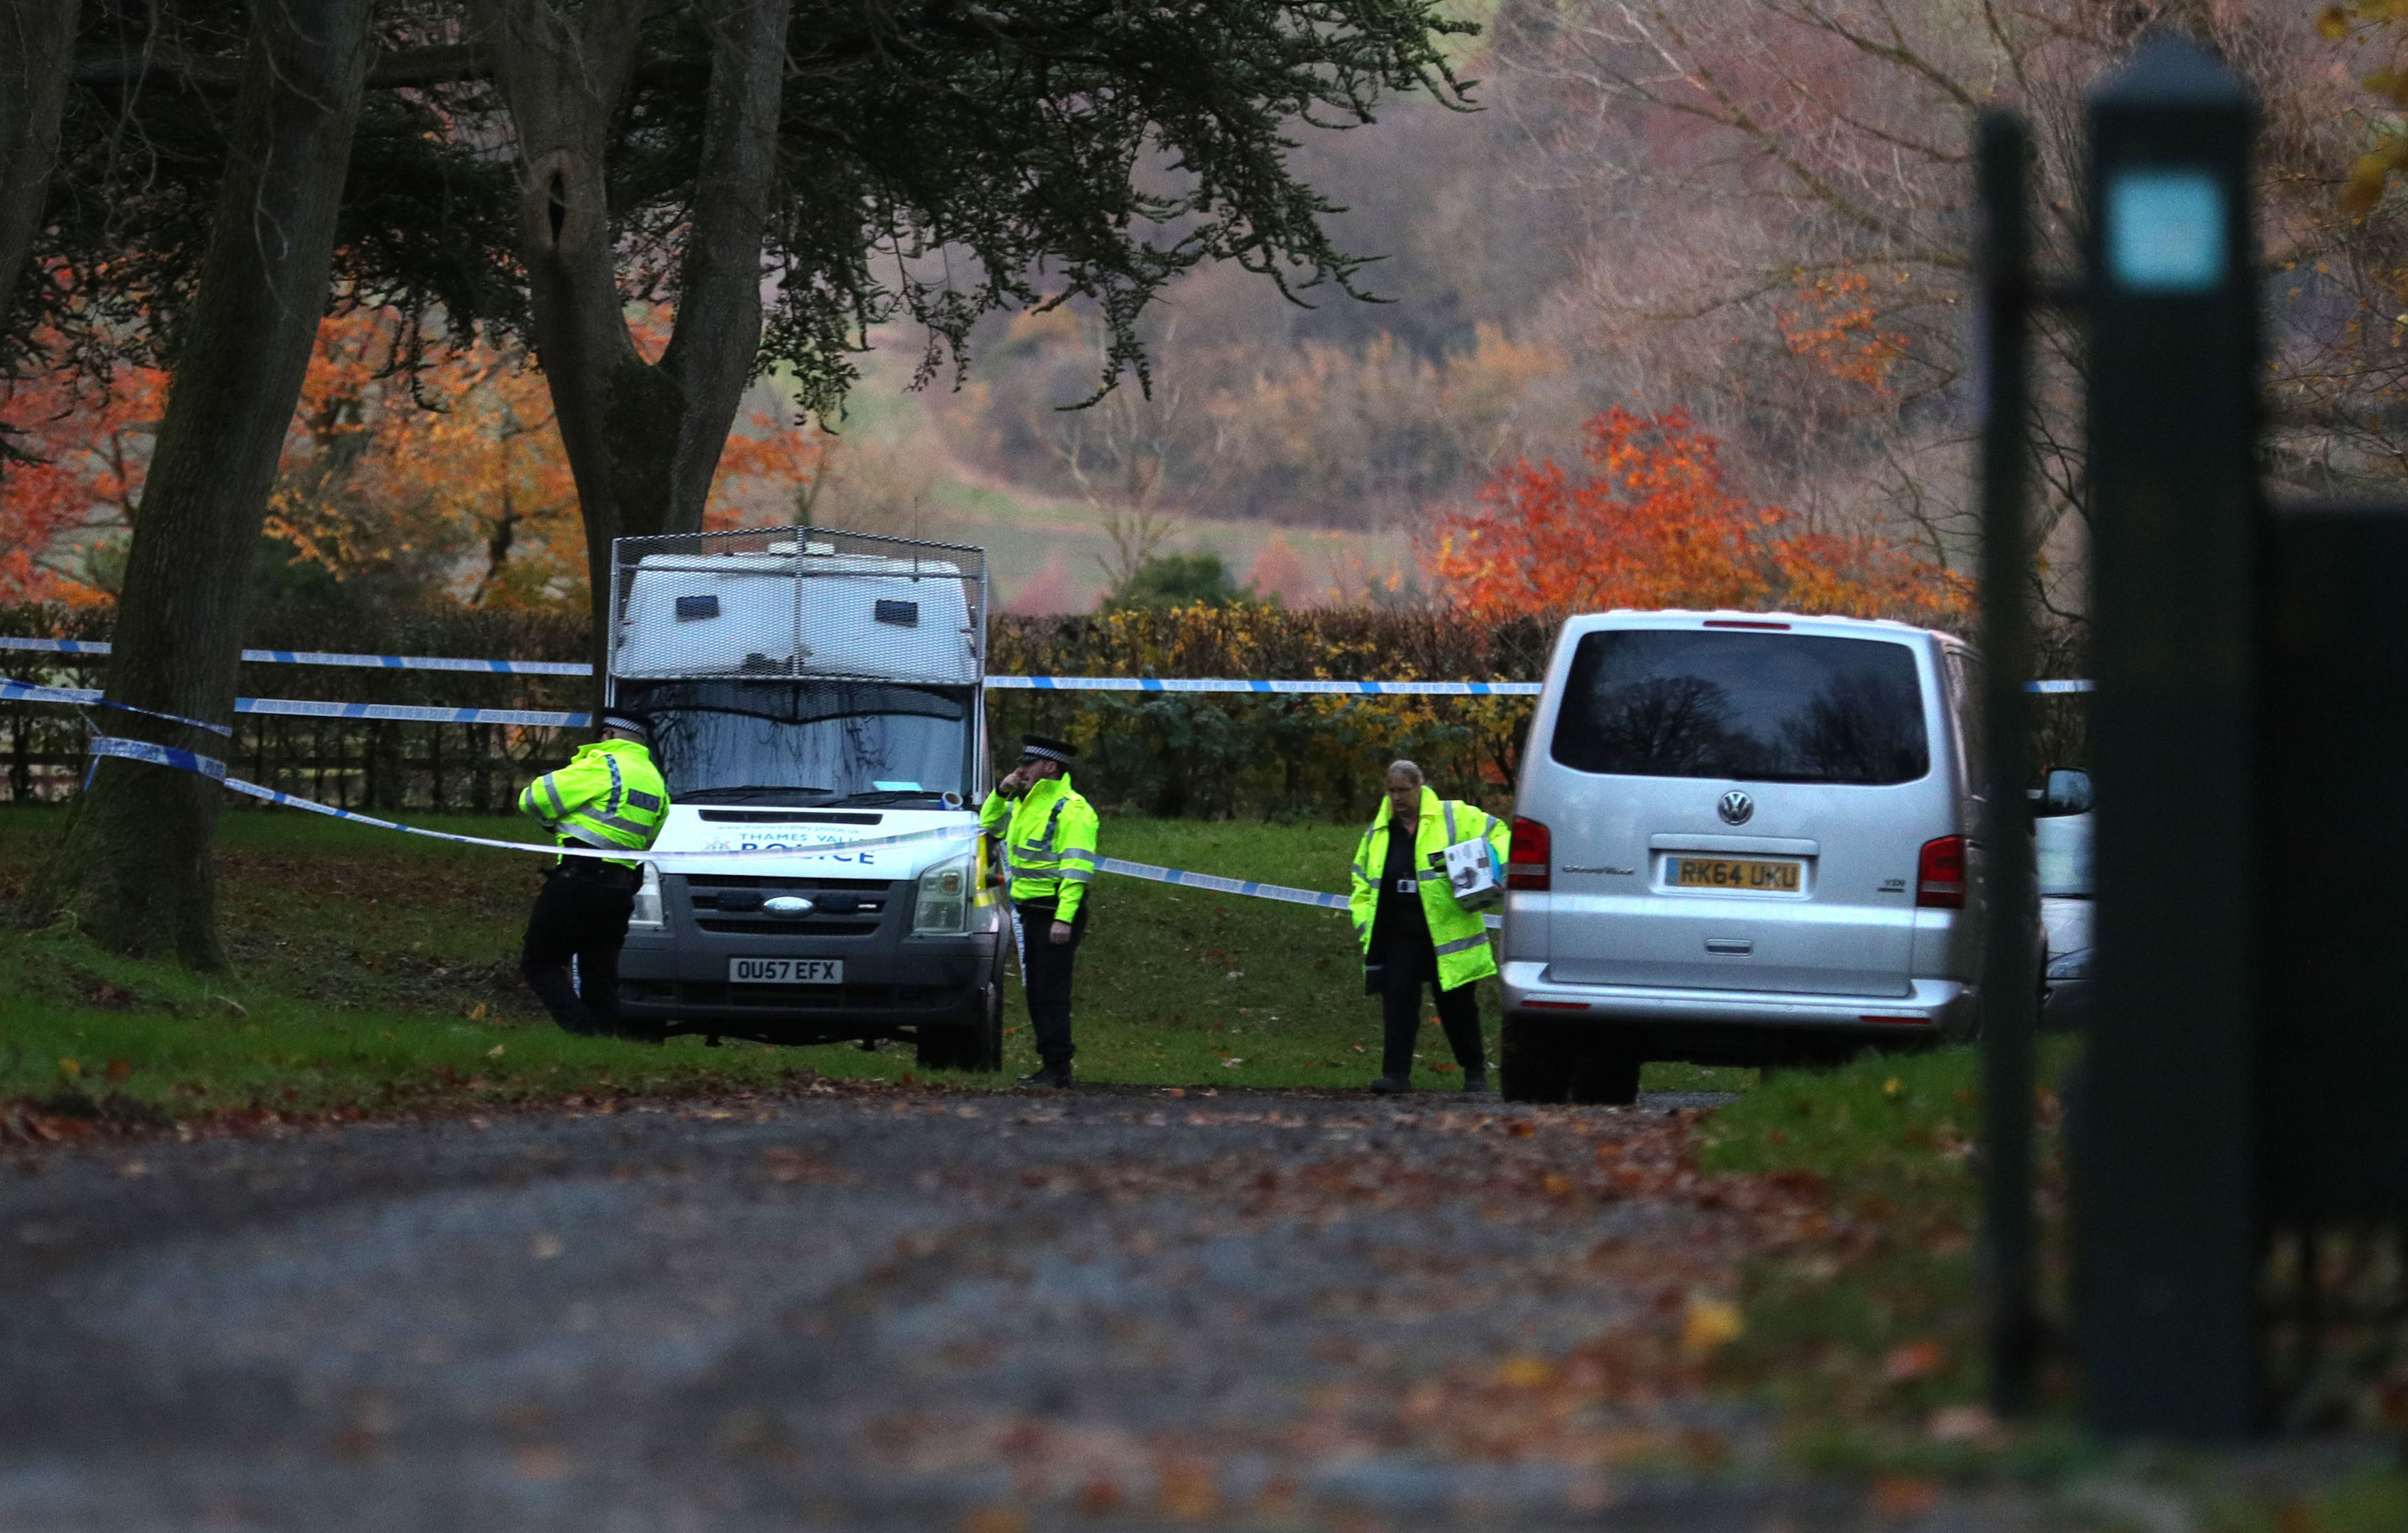 Police at the scene near Waddesdon, in Buckinghamshire (Aaron Chown/PA Wire)